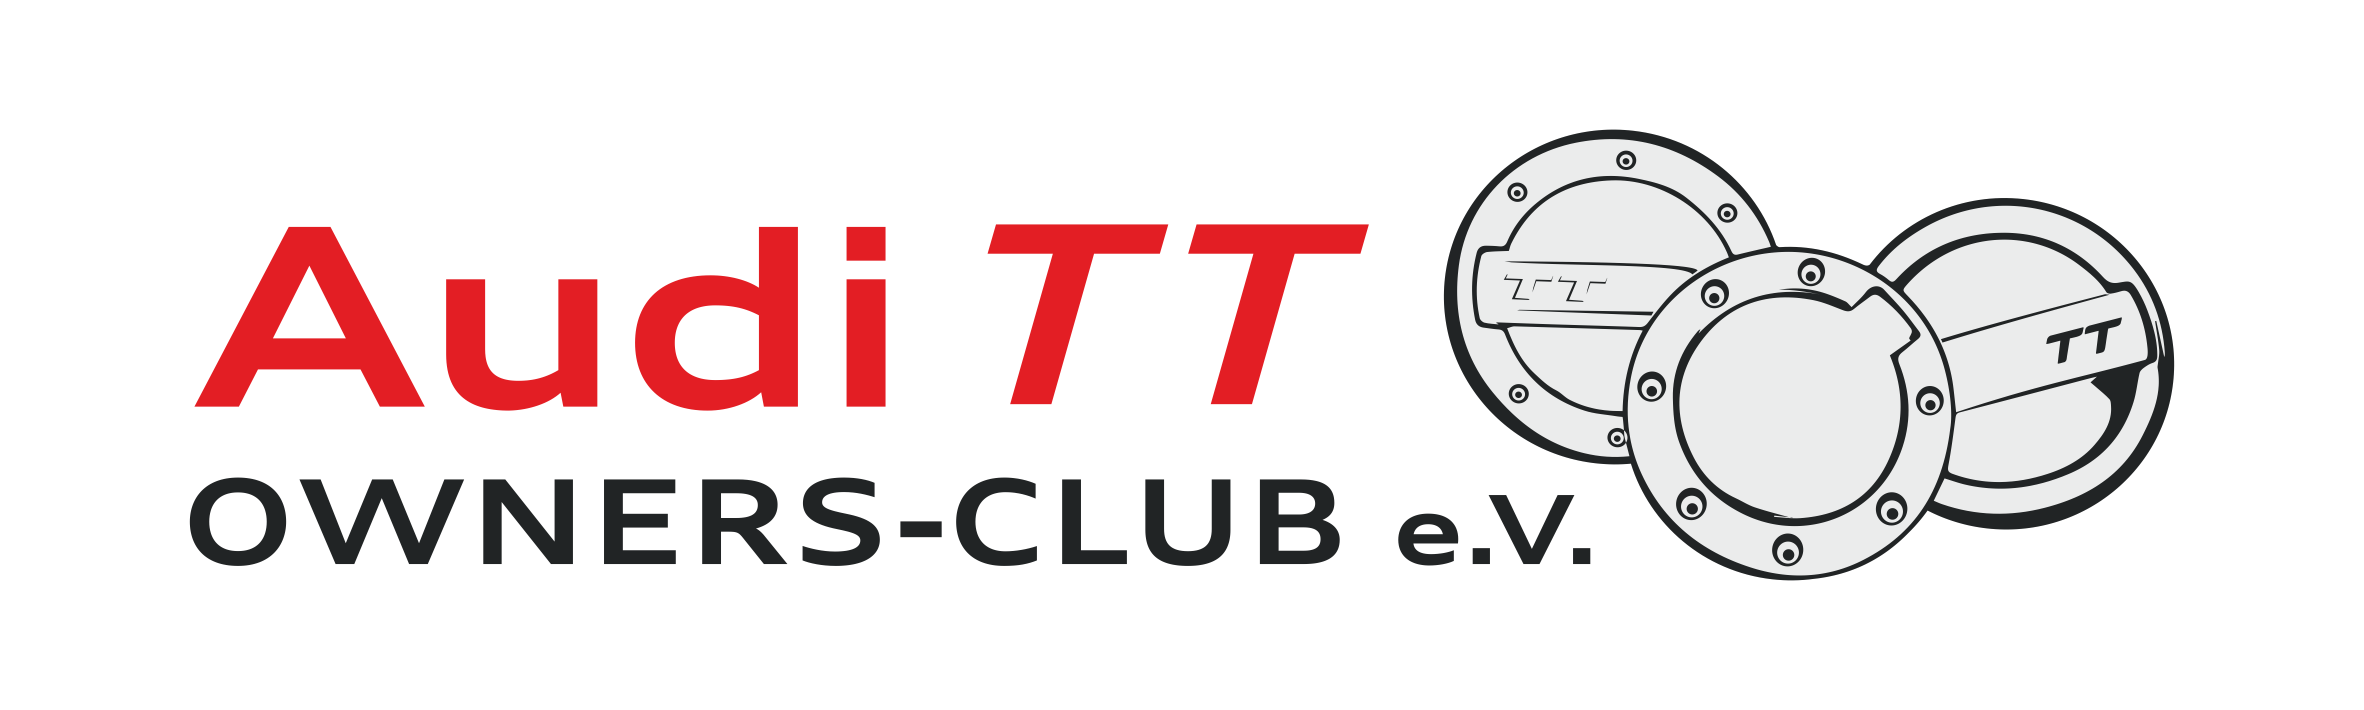 Audi tt-owners-club.net